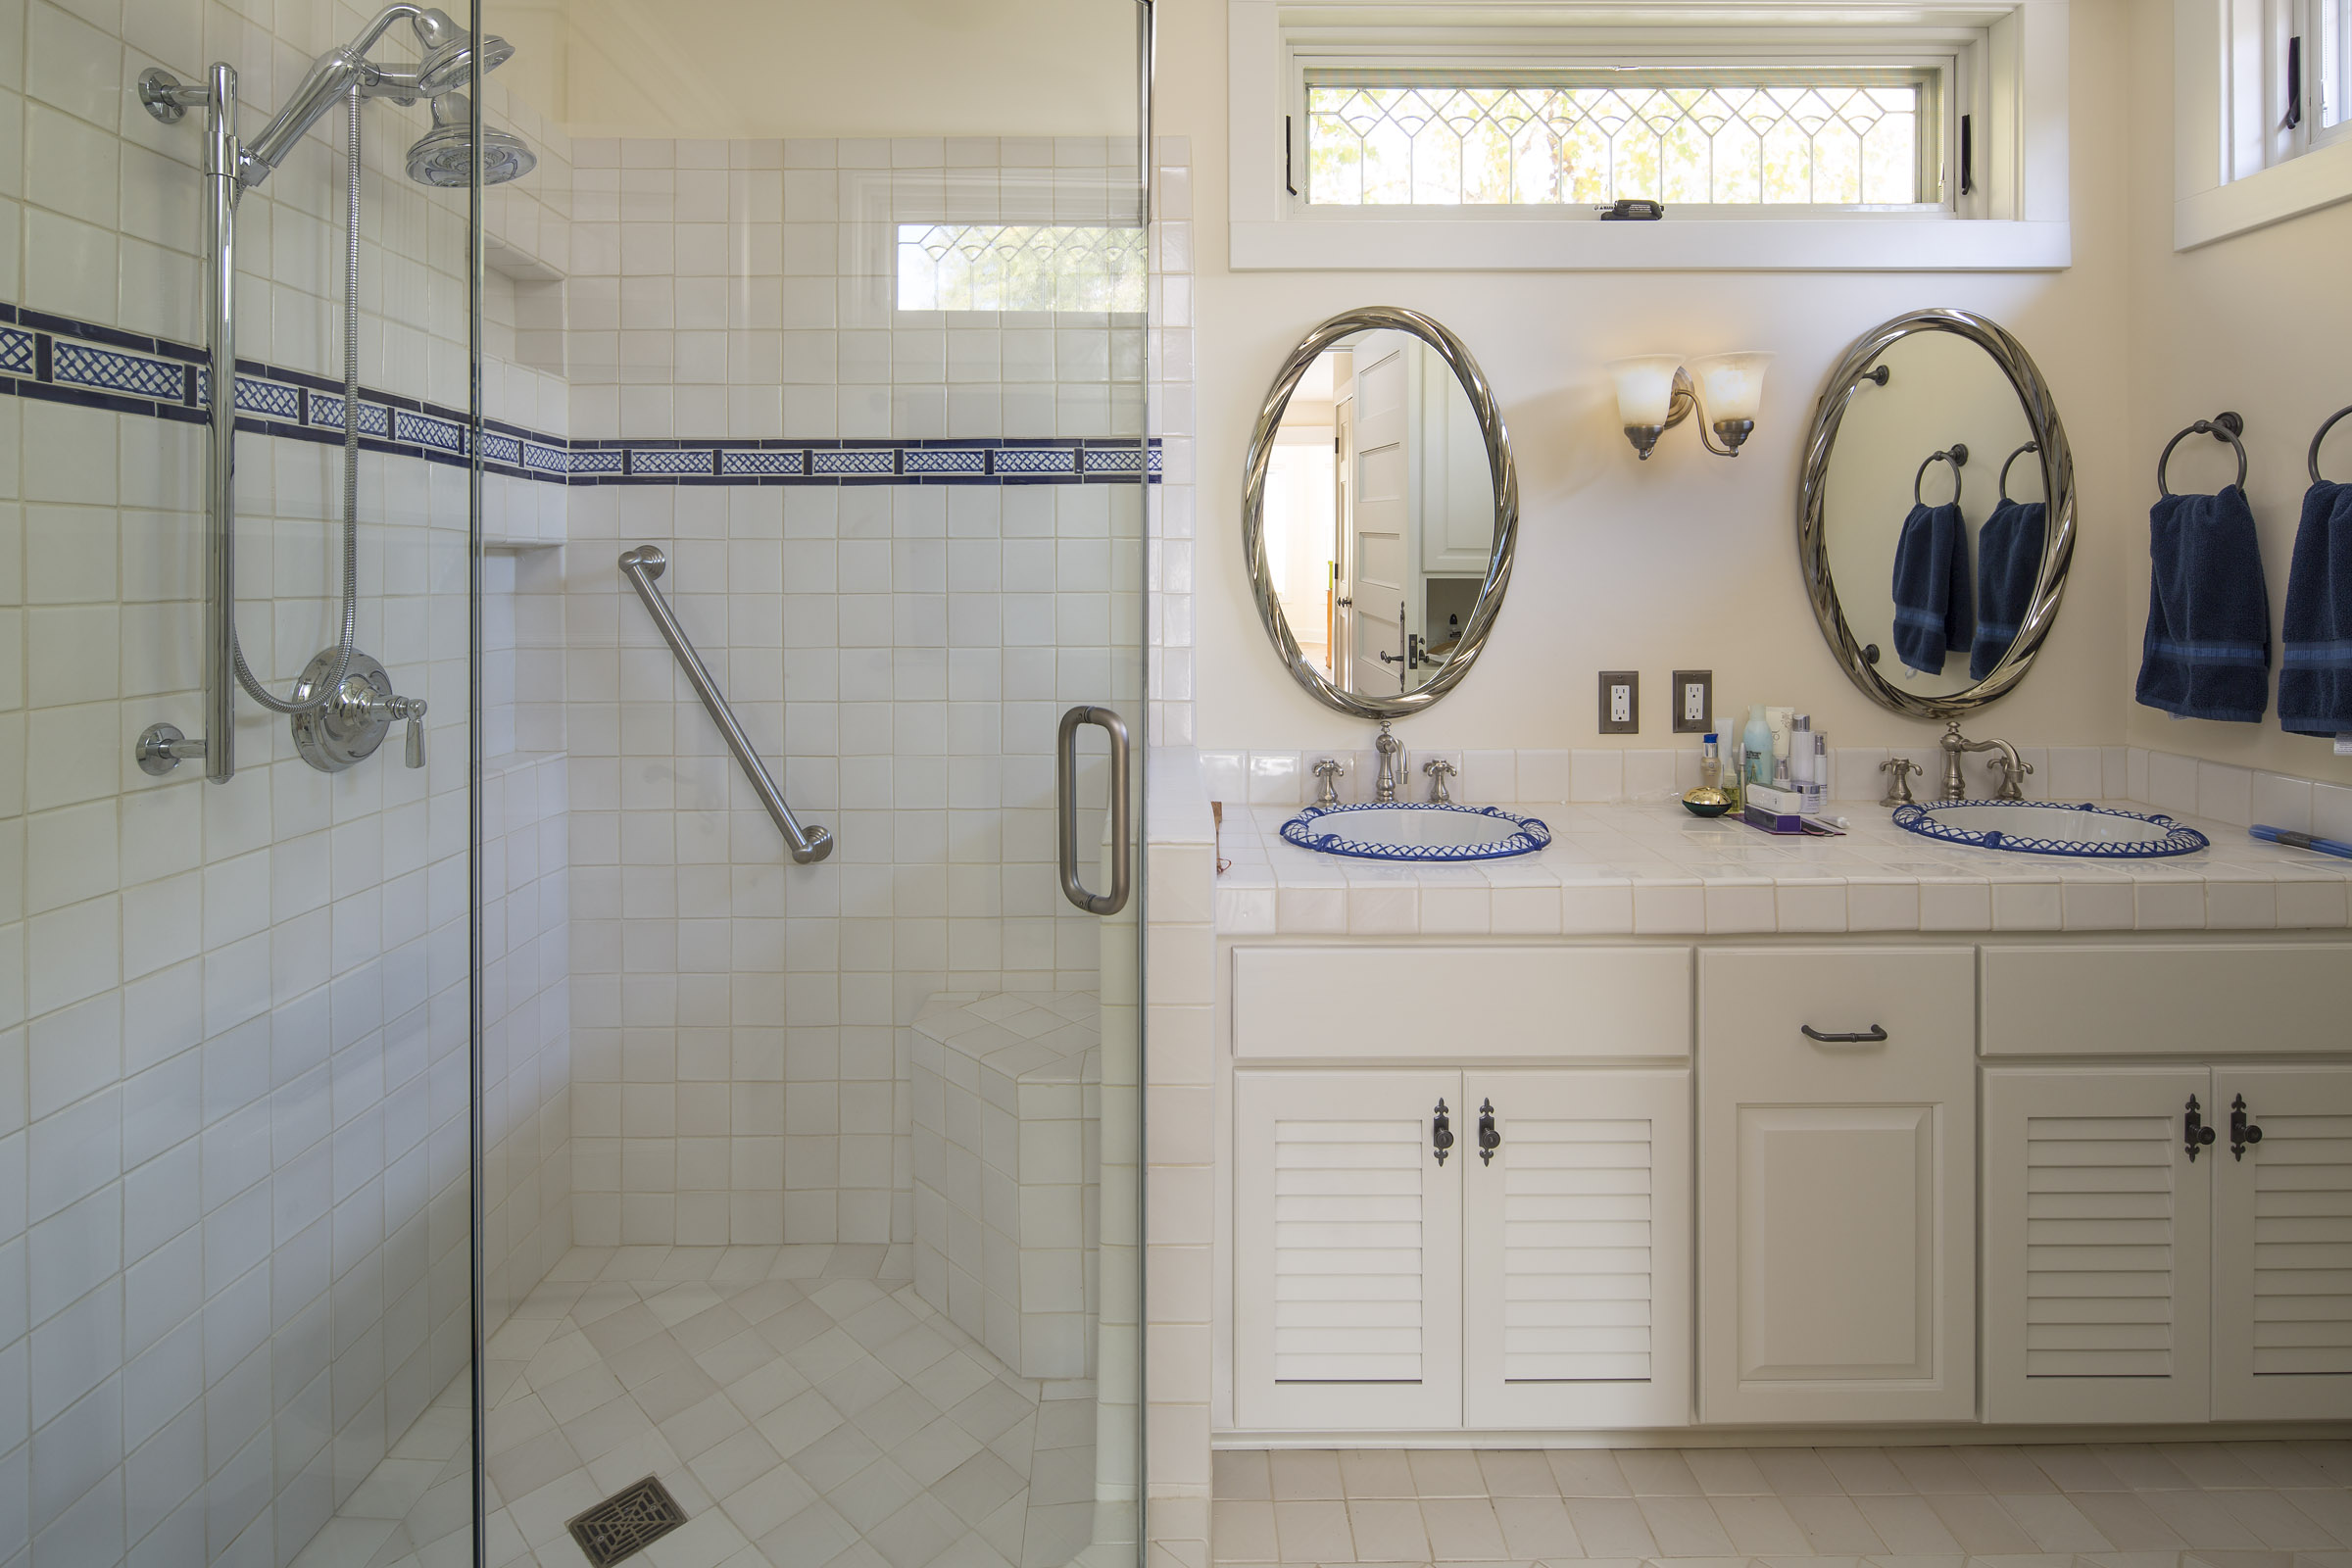 Bathroom remodeled with blue accents.